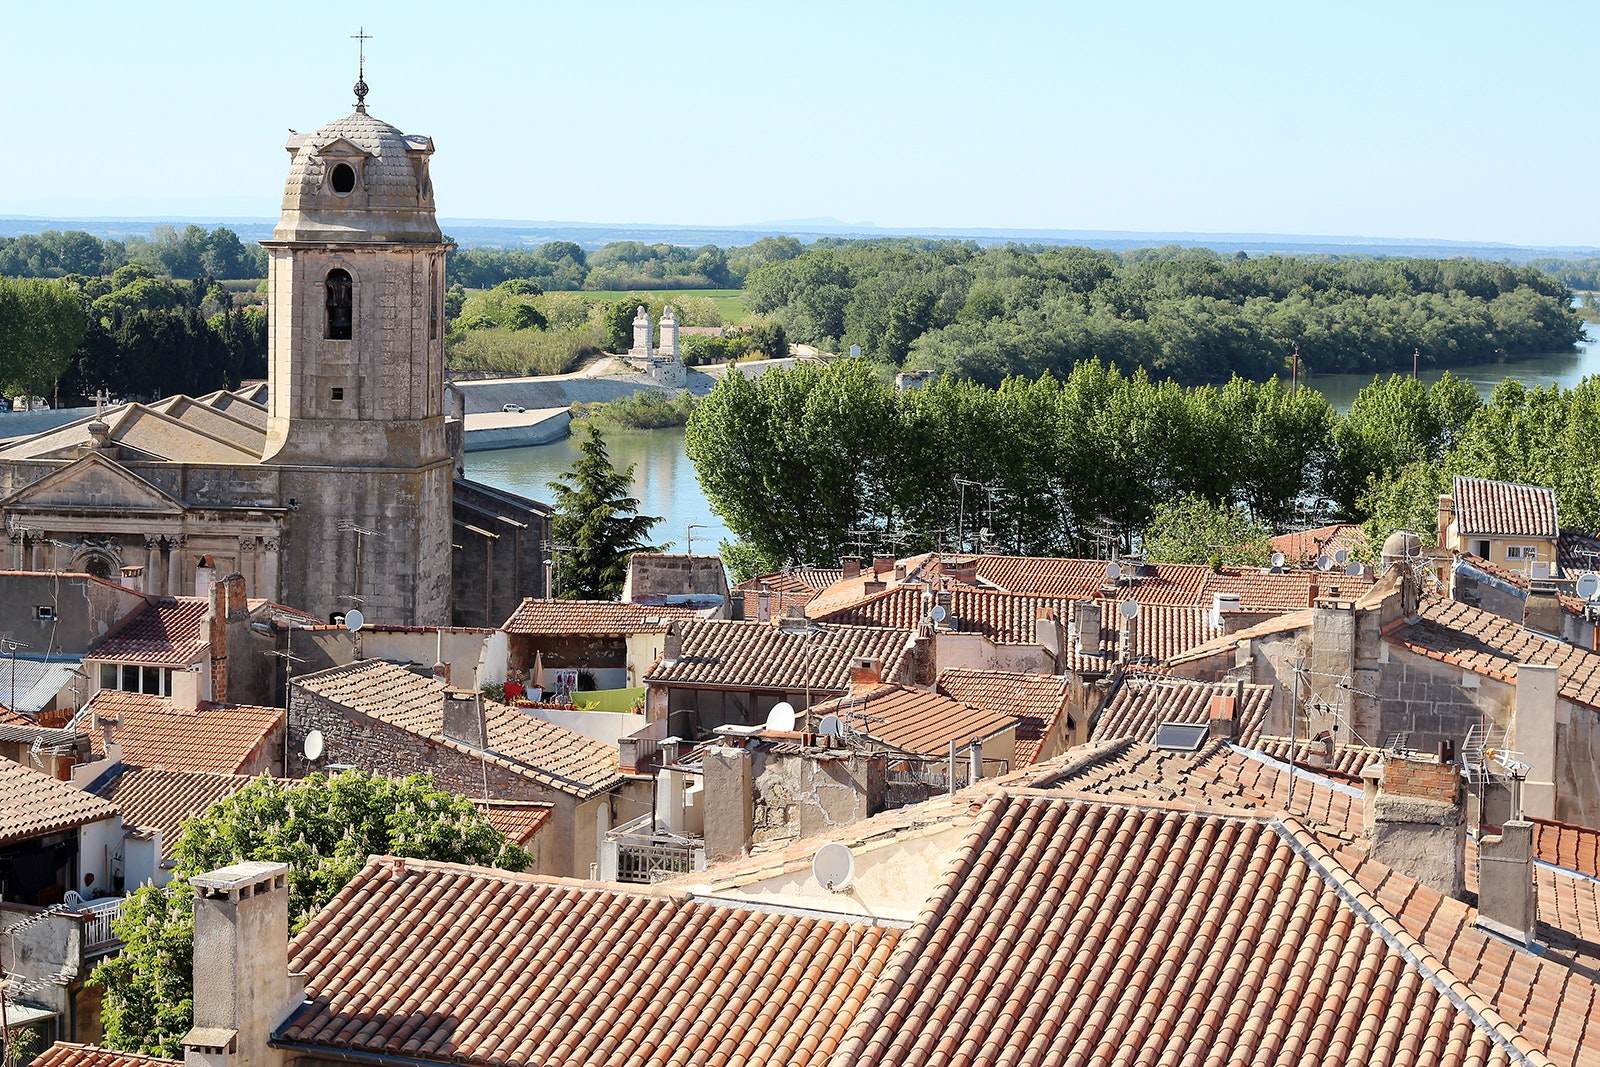 Vincent Van Gogh lived in Arles during one of his most productive periods.